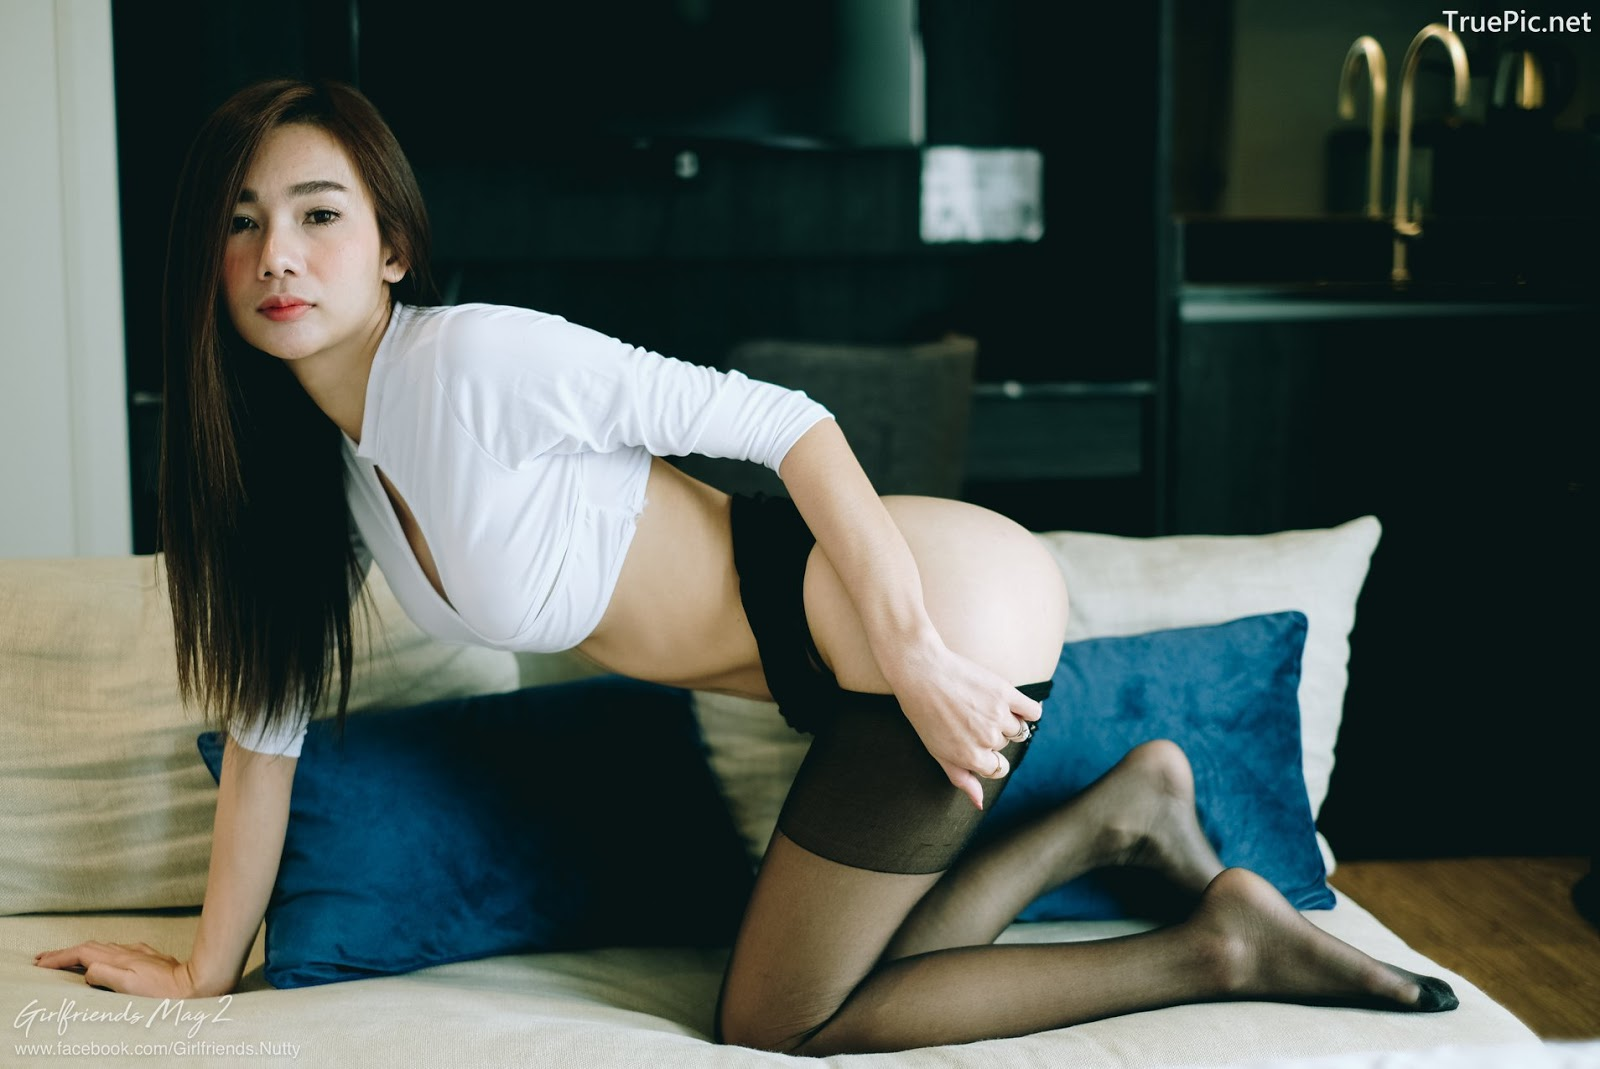 Image Thailand Model - Tadsanapon Kampan - WFH (Work from Hotel) - TruePic.net - Picture-2